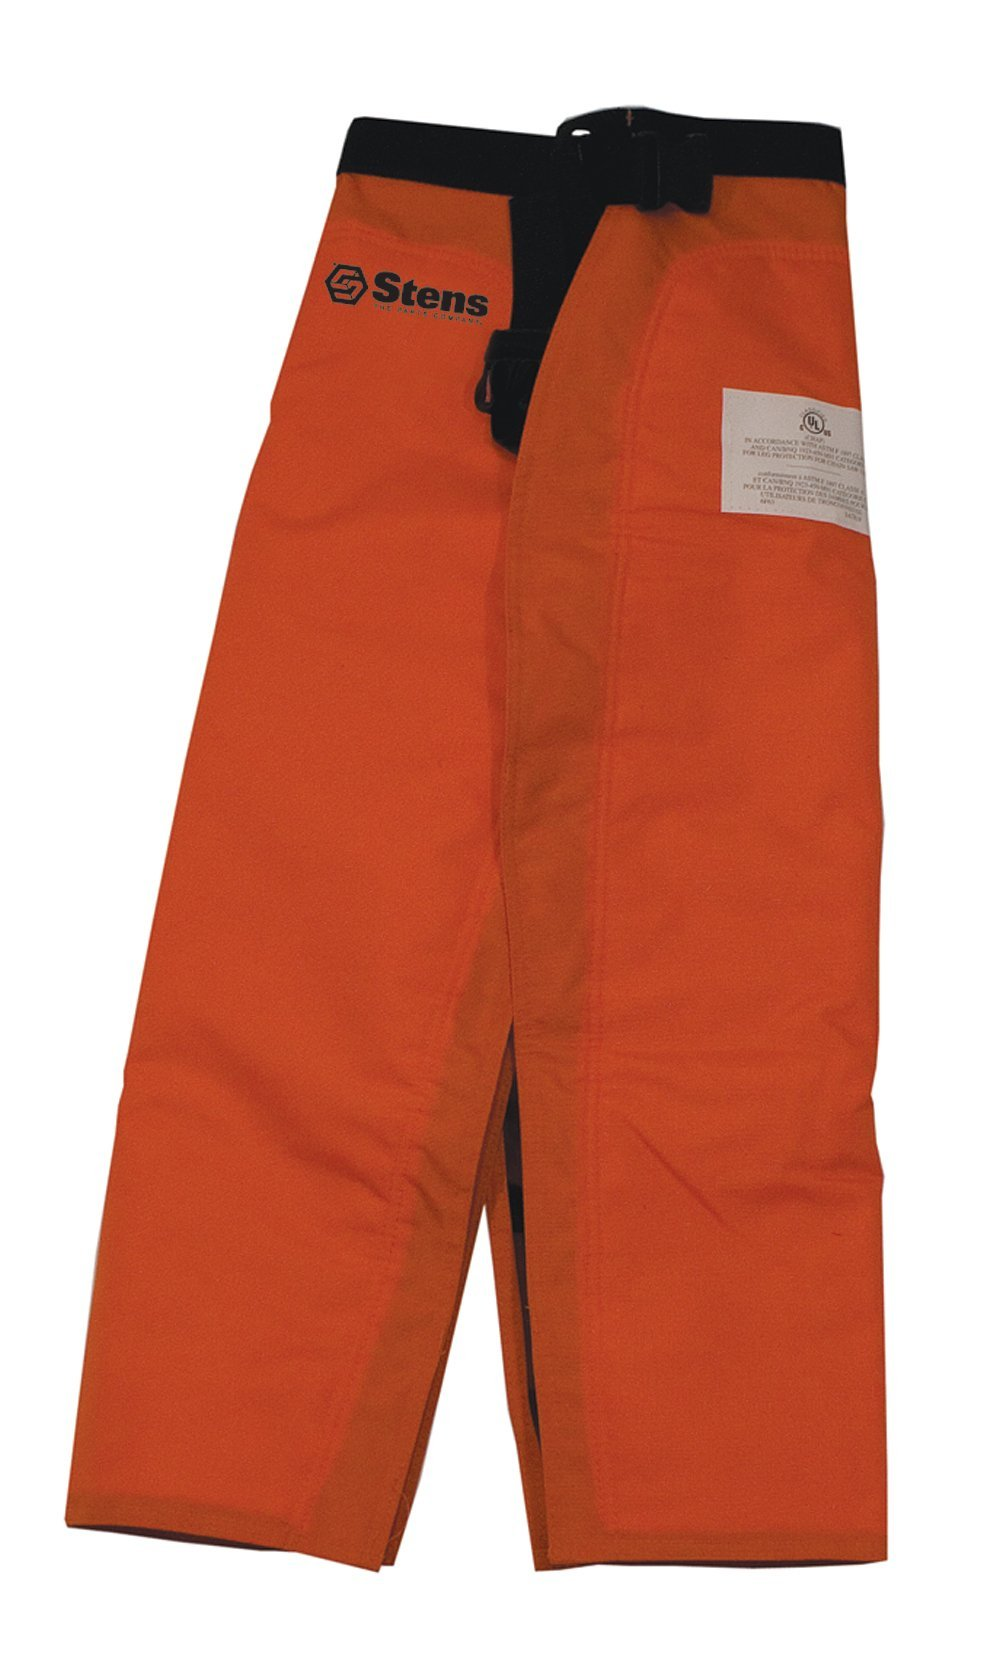 Stens 751-073 Safety Chaps by Stens